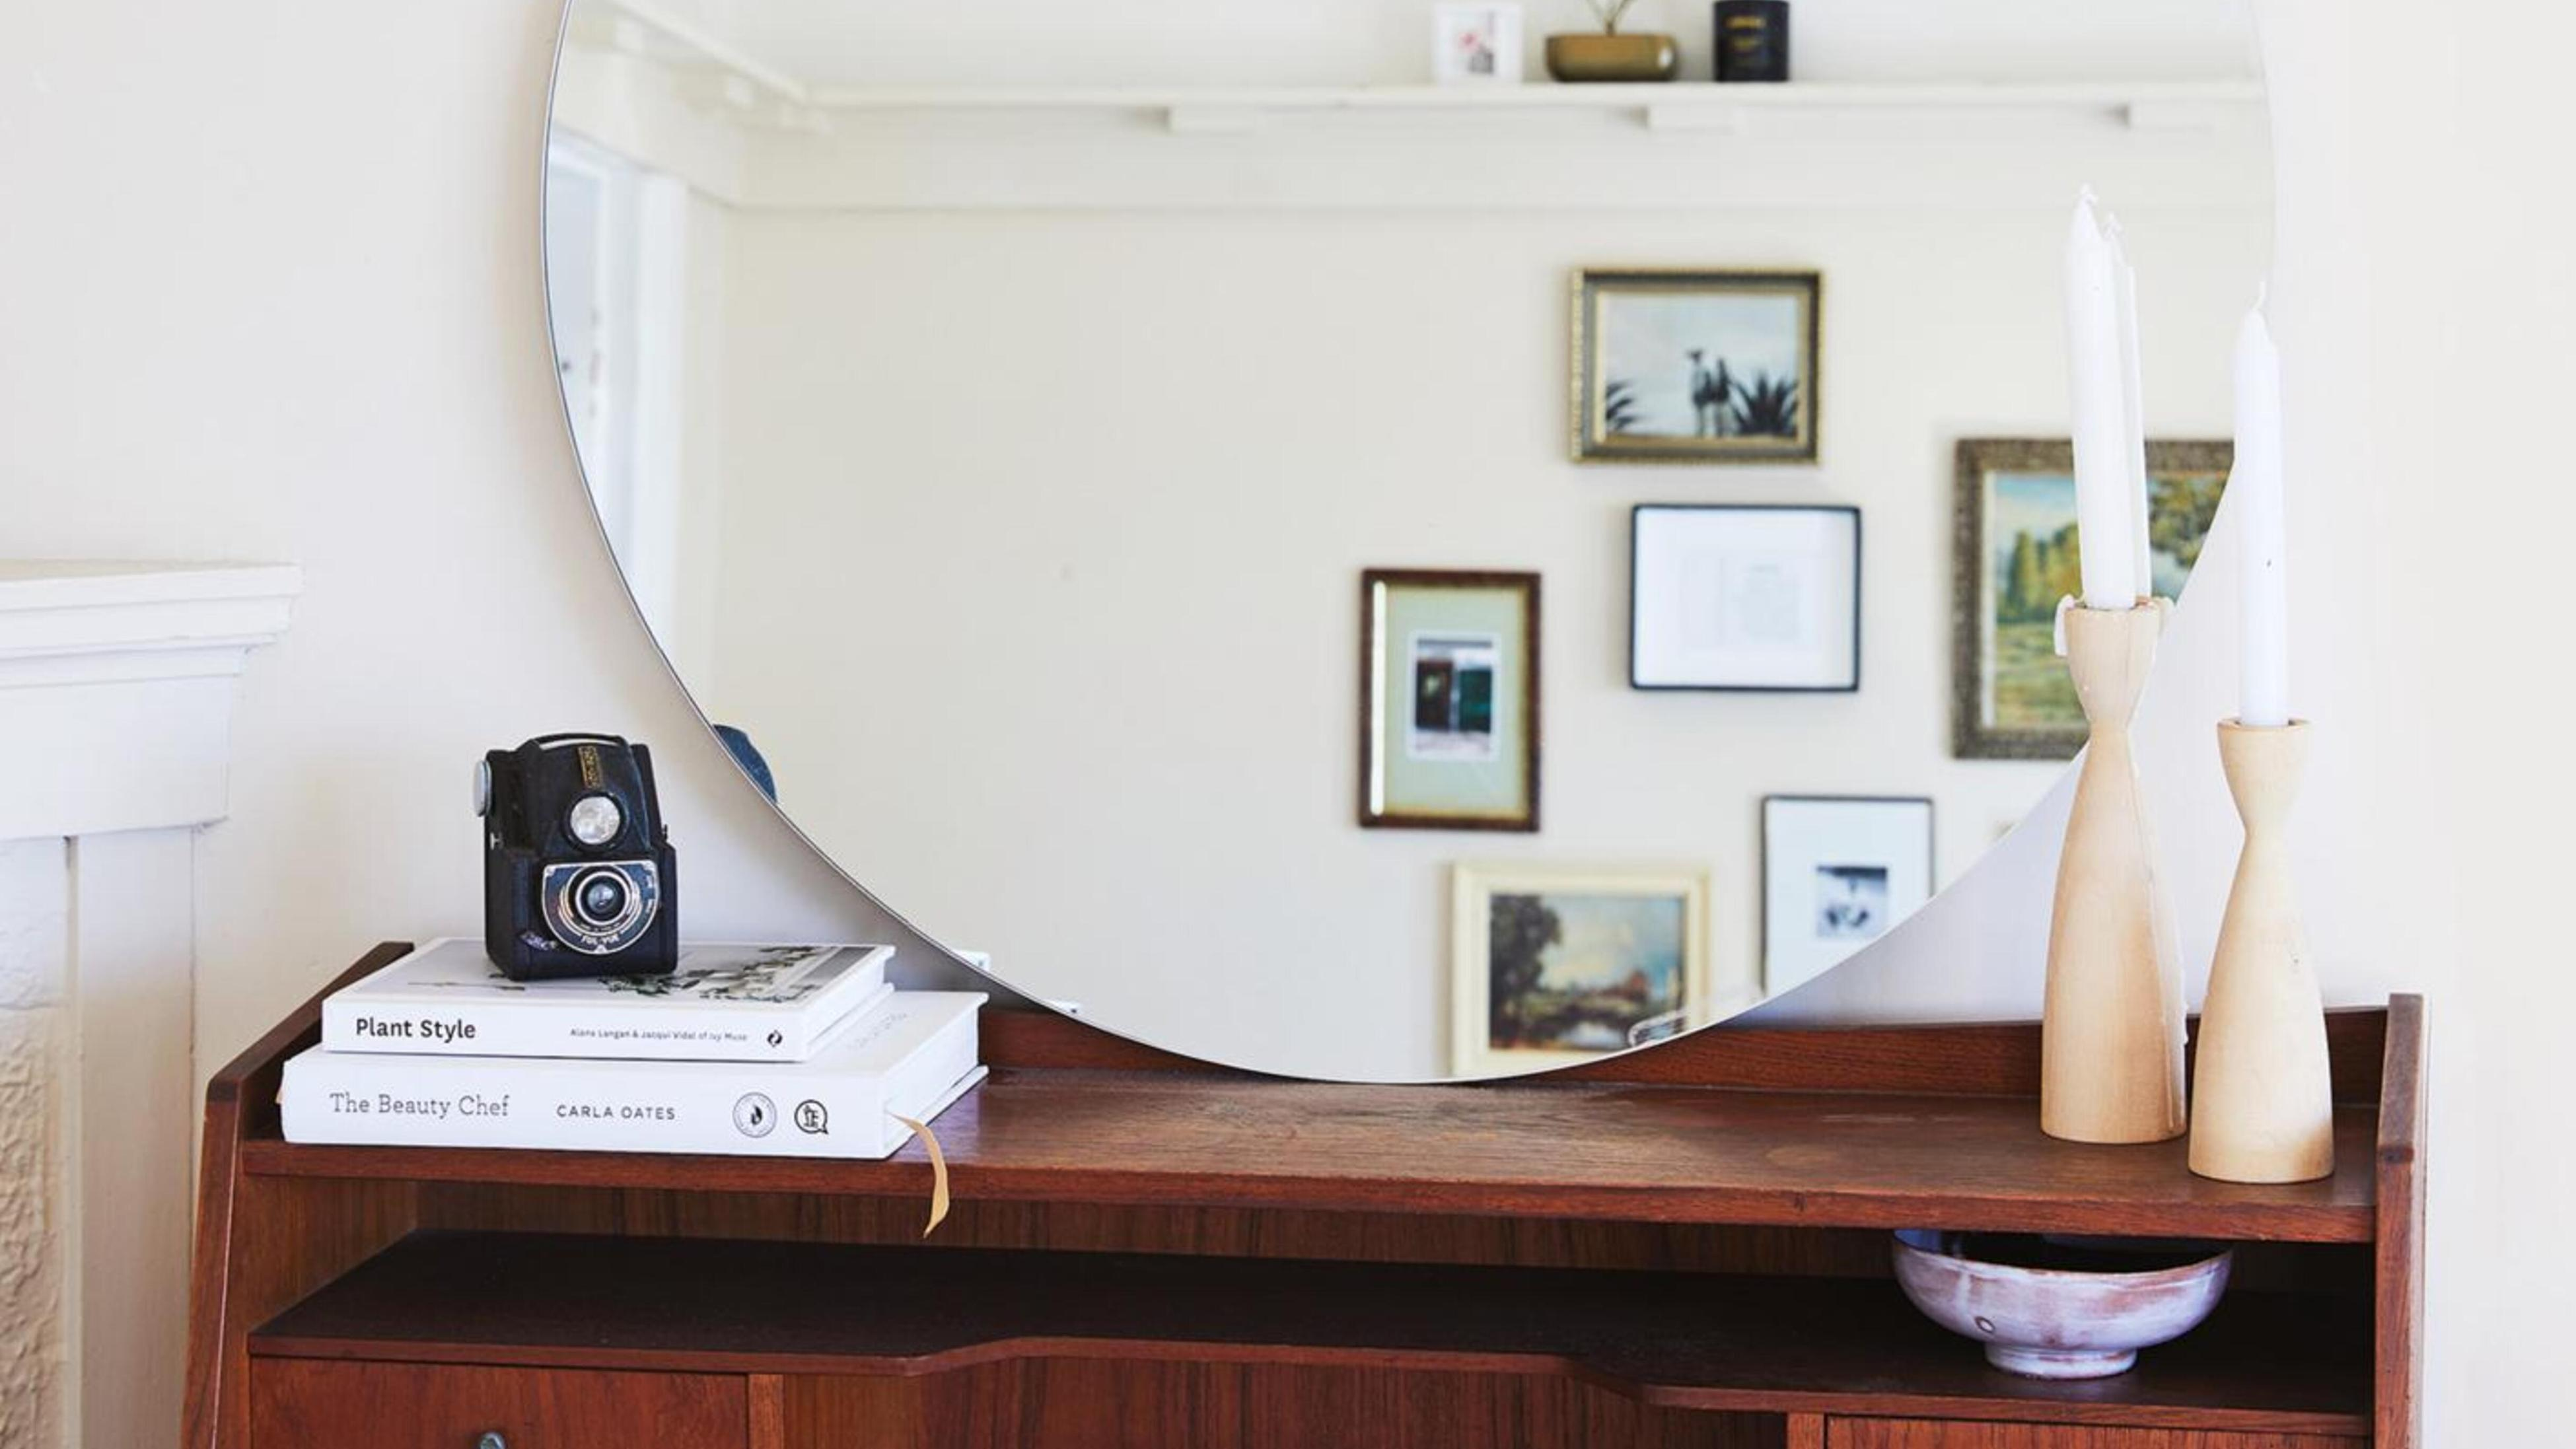 A shelf with a mirror, camera, books and candles on top. In the reflection of the mirror are hanging picture frames.